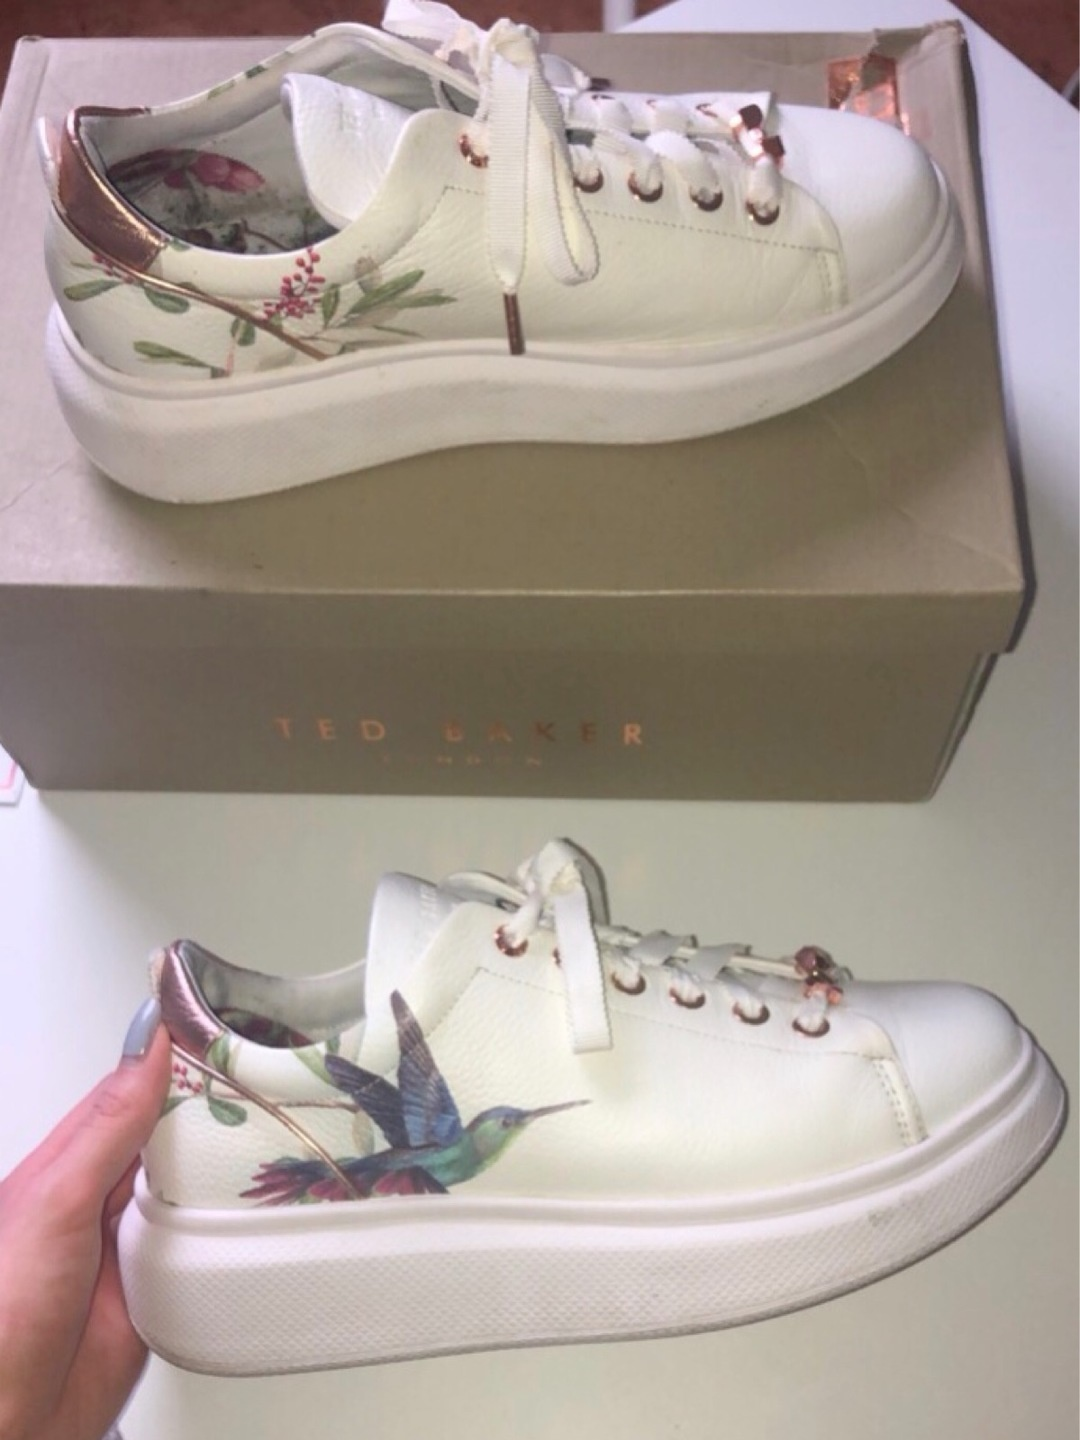 Women's sneakers - TED BAKER photo 3